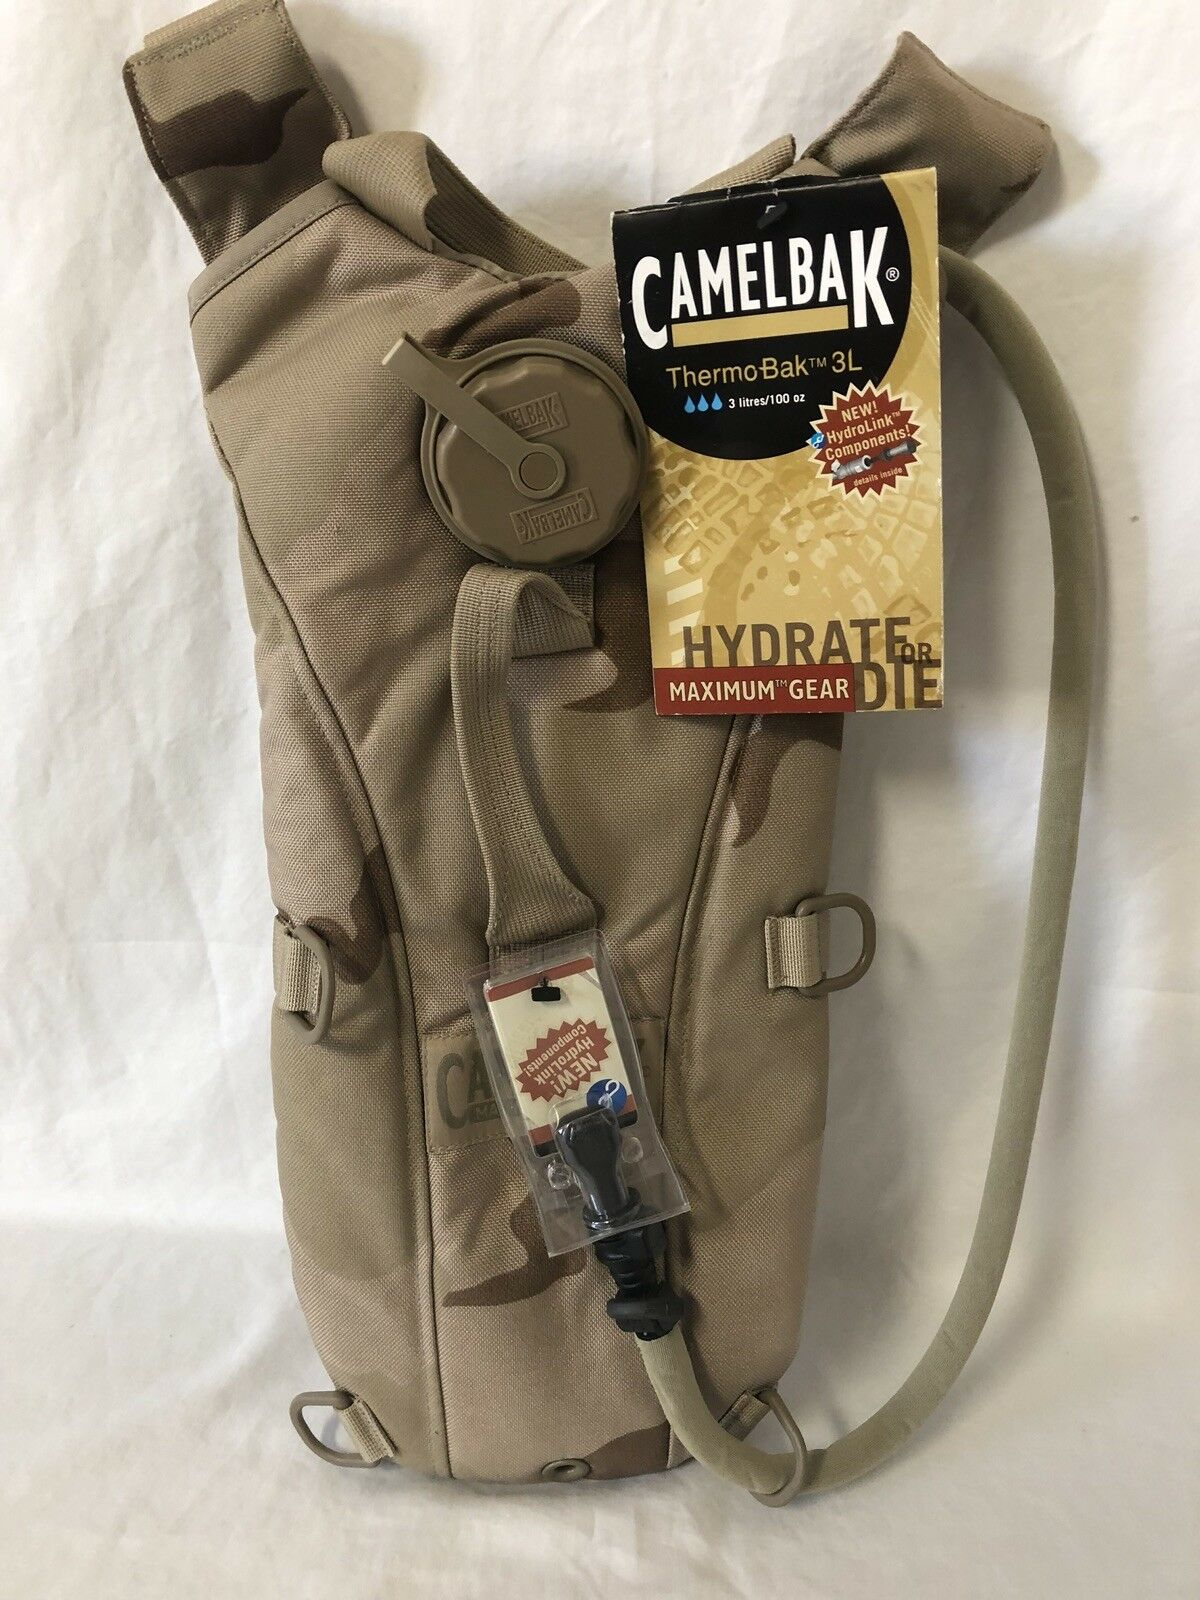 CAMELBAK DCU MAXIMUM GEAR THERMOBAK 3L 100  OZ  NEW WITH TAGS  fashionable